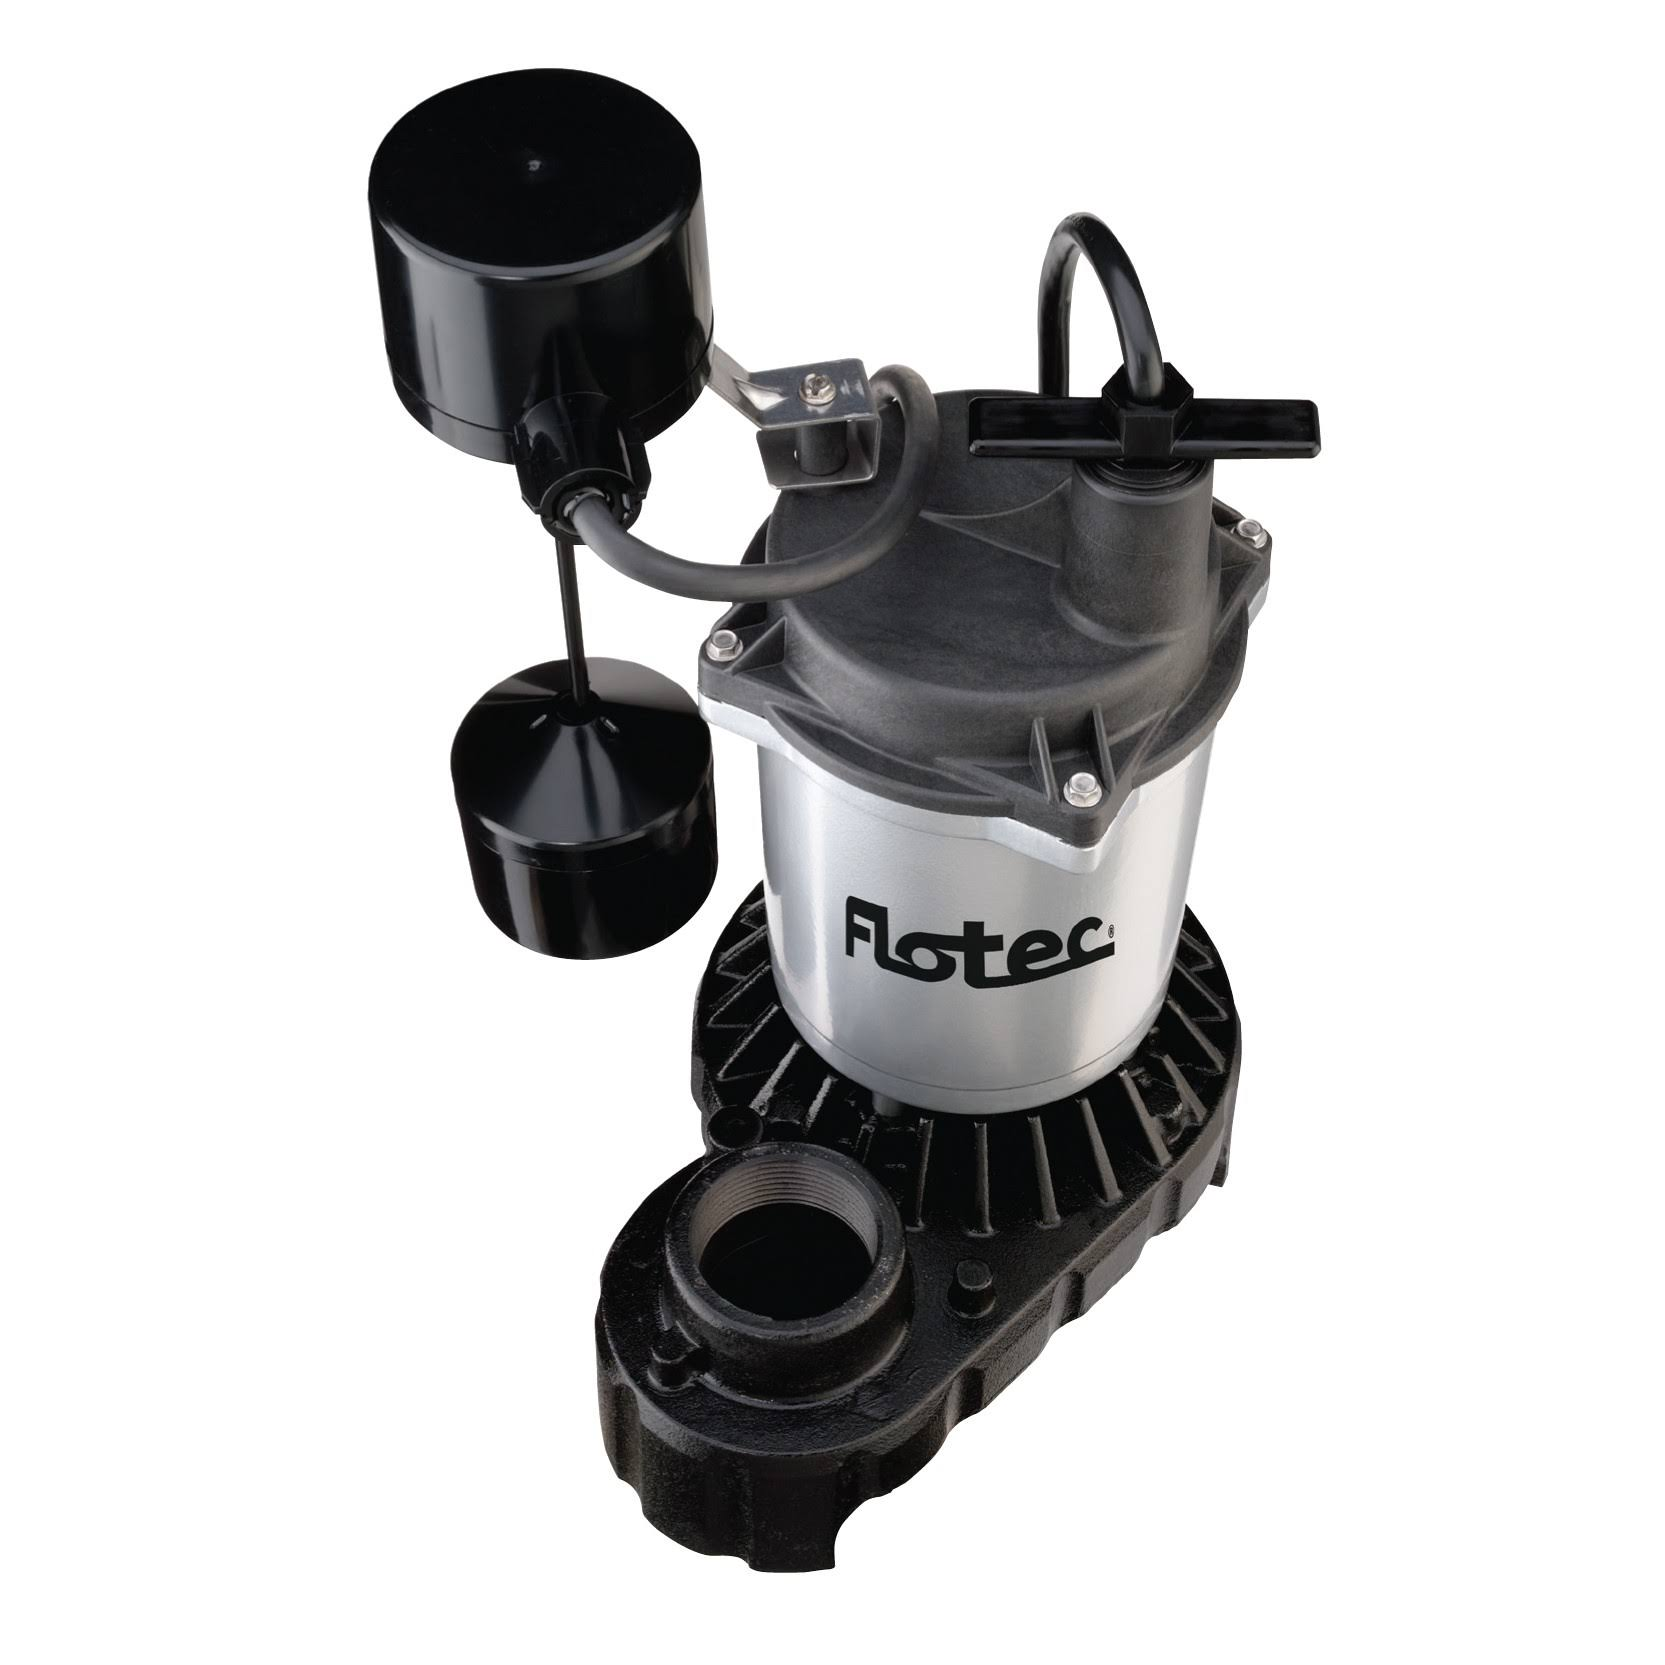 "Flotec Submersible Sump Pump - 1/3HP, 1-1/2"" FPT"